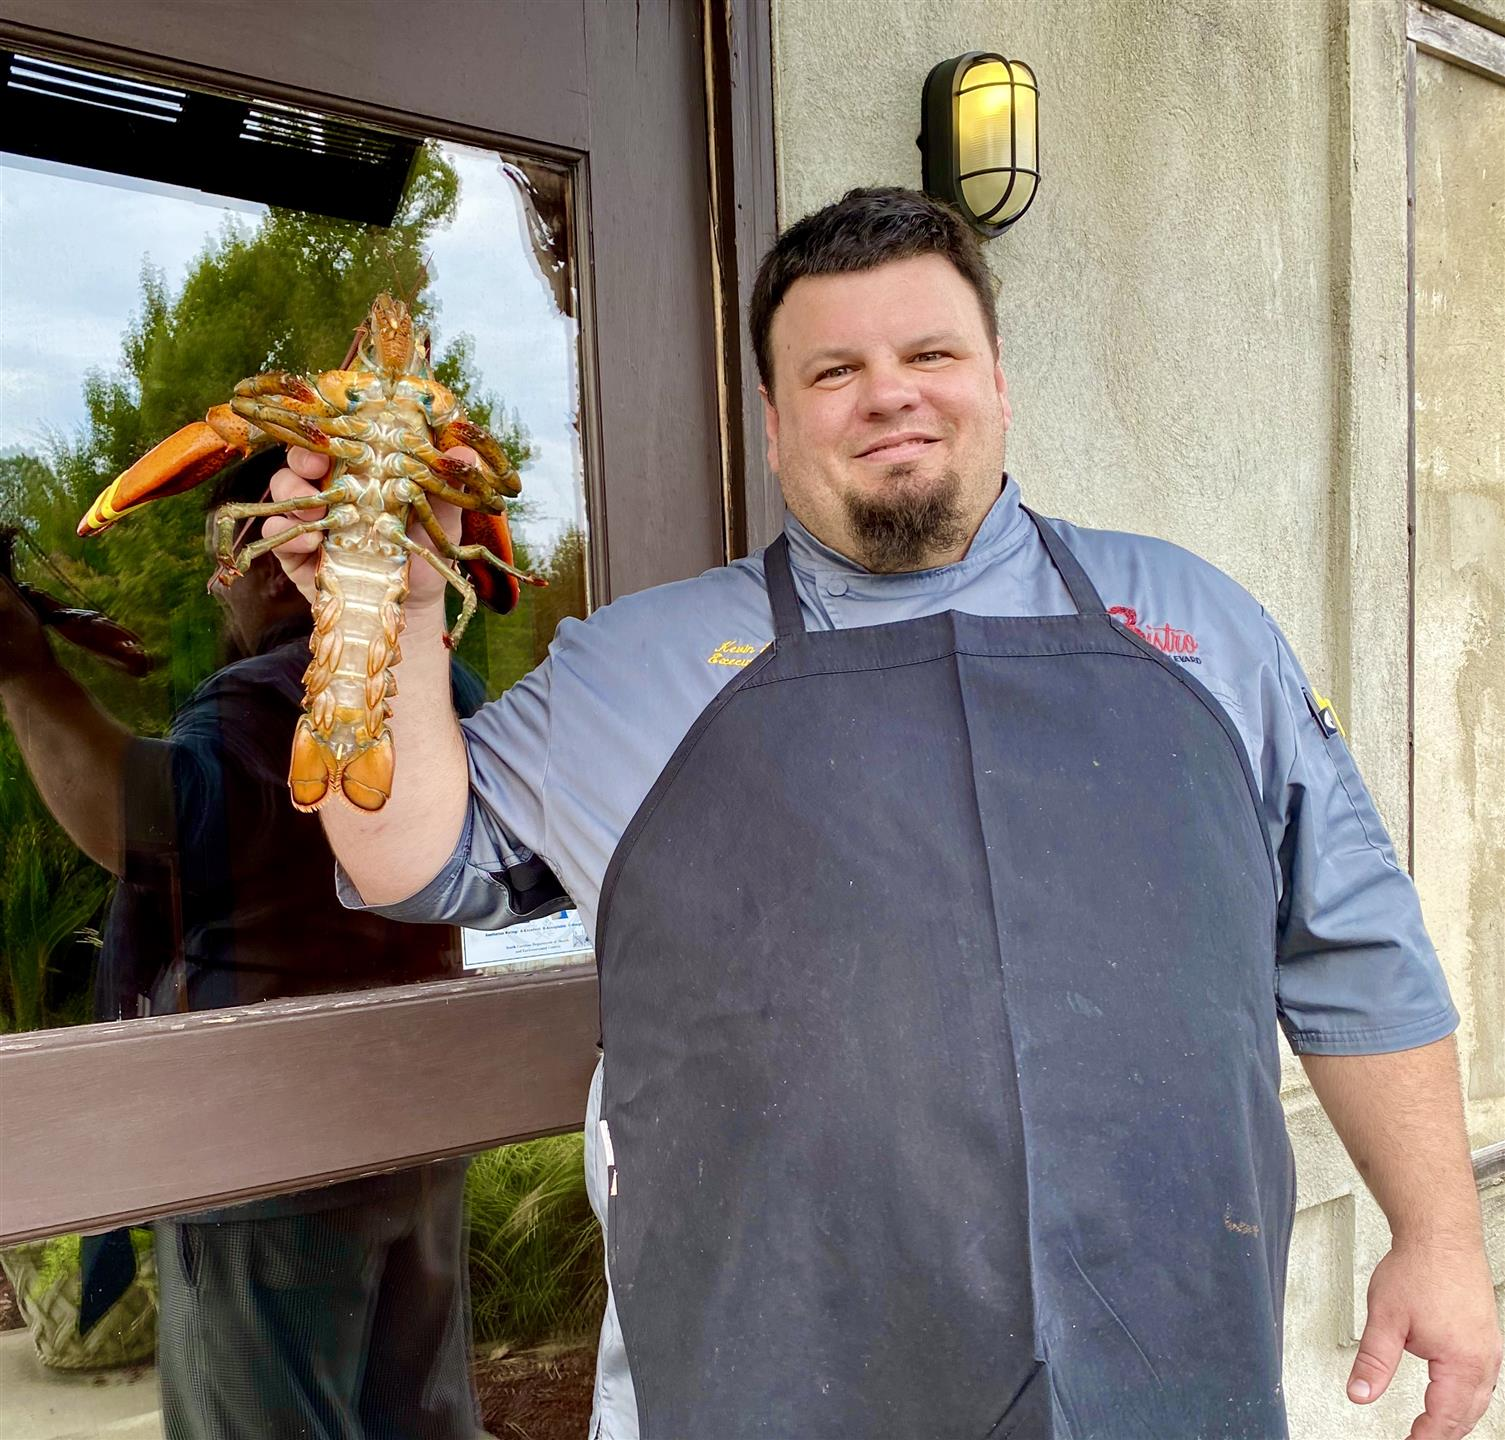 Chef Kevin with his Lobster Friend